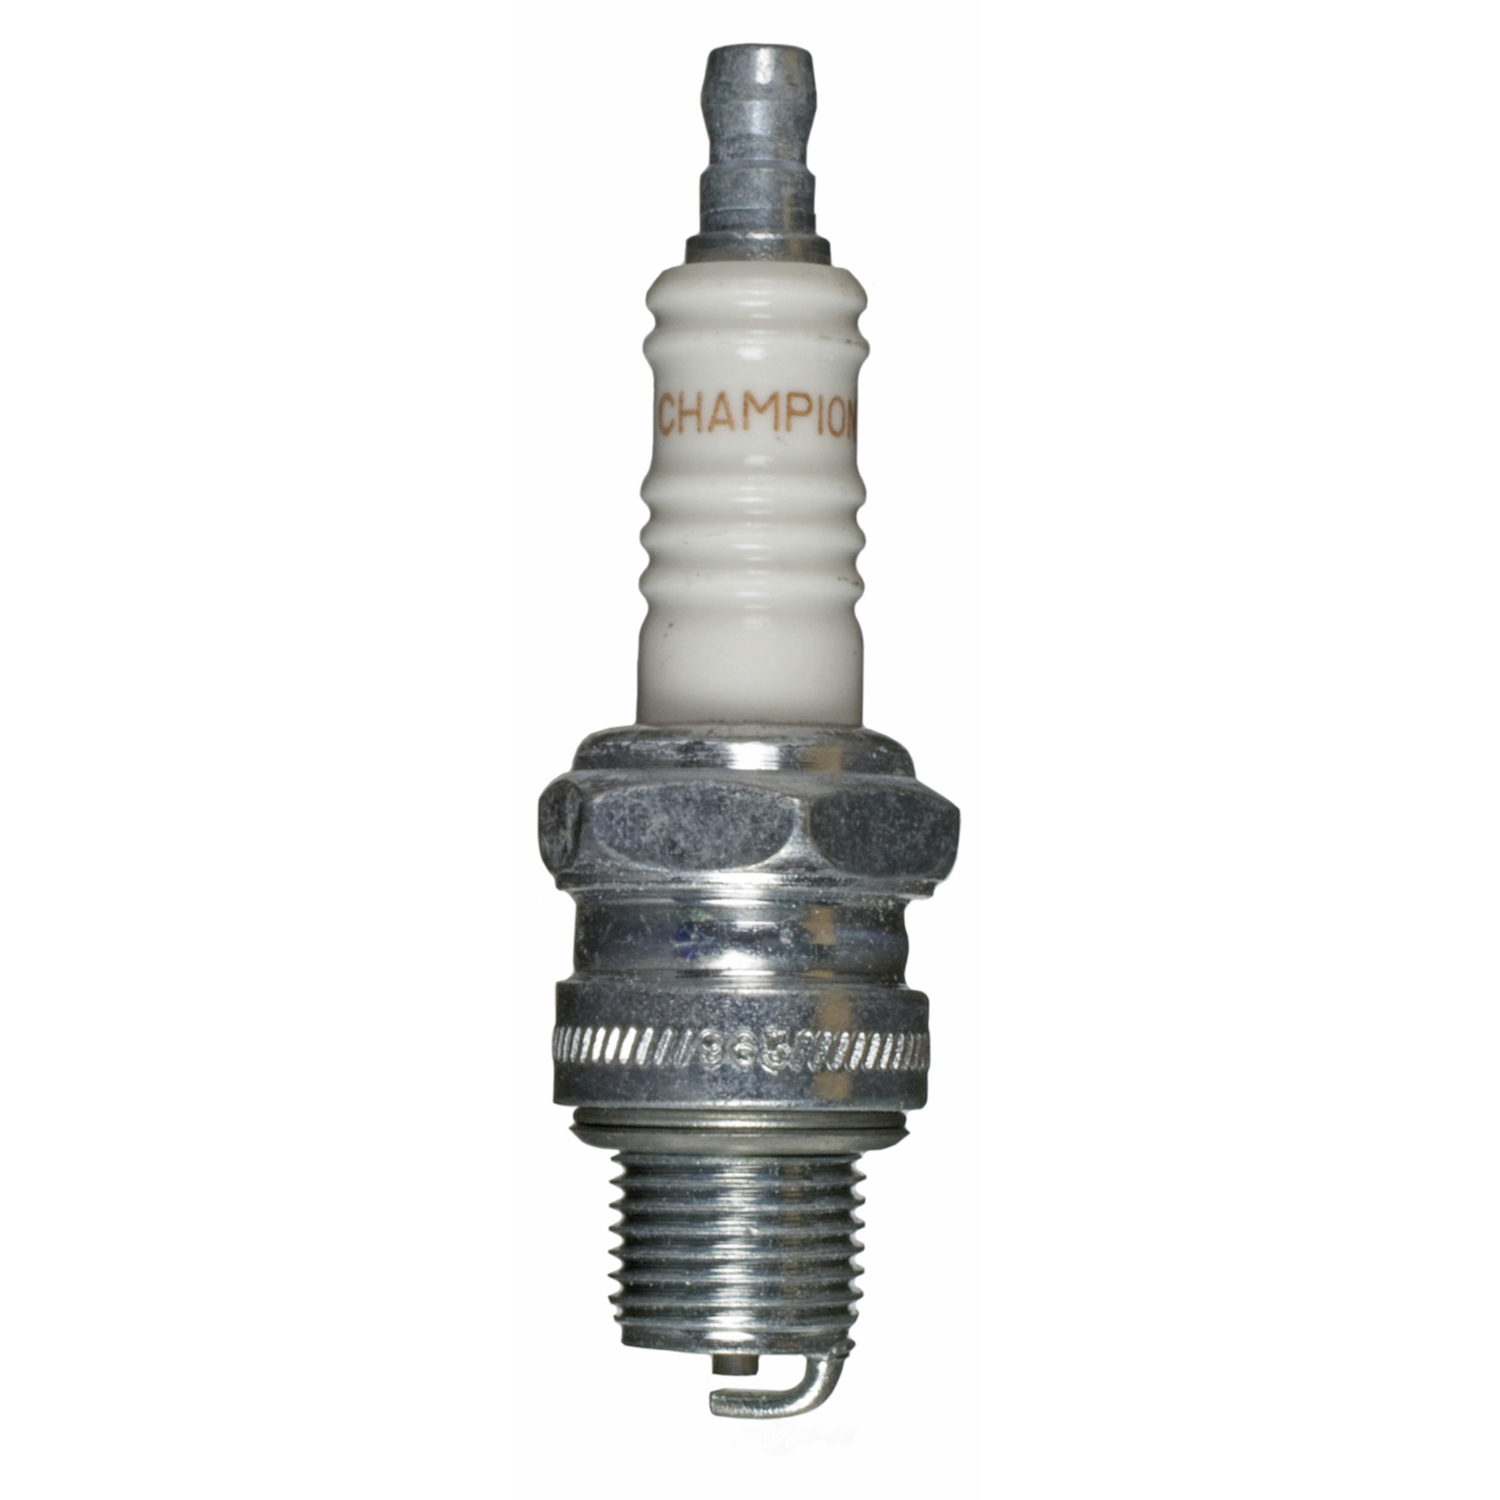 CHAMPION SPARK PLUGS - Copper Plus Spark Plug - CHA 306